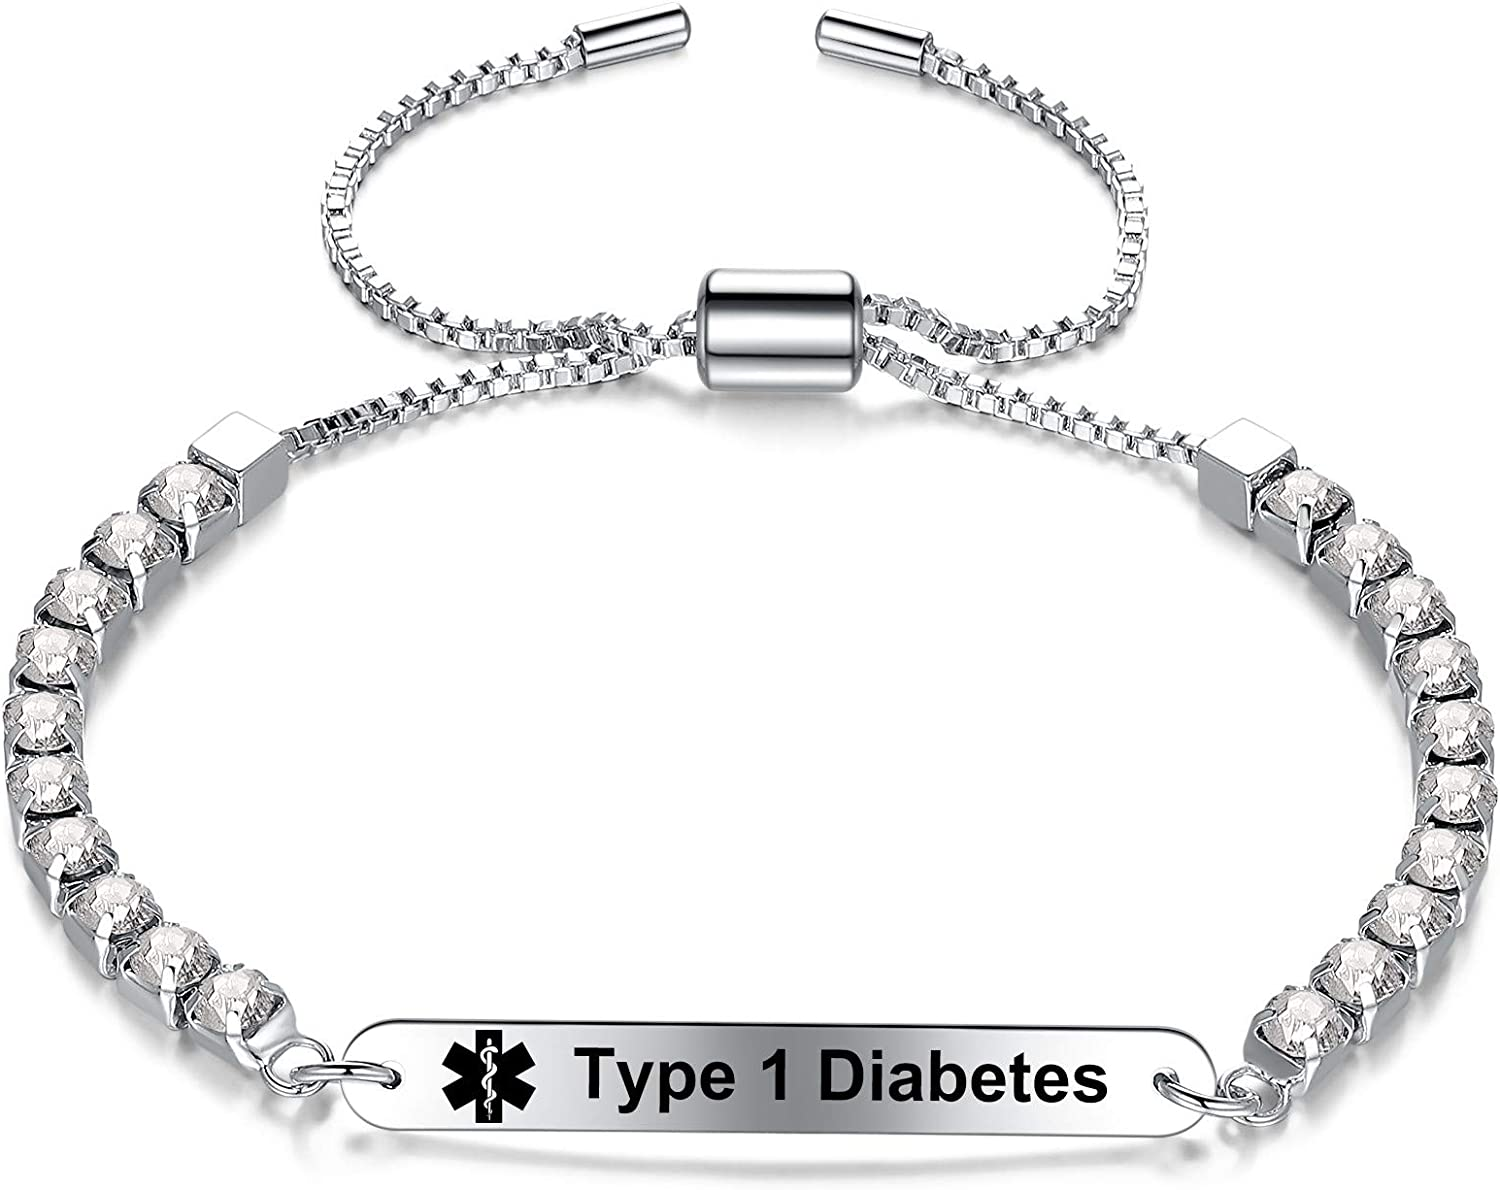 Personalized Engraved Diabetes Now on NEW before selling sale Medical Alert Bracelets Wo ID for